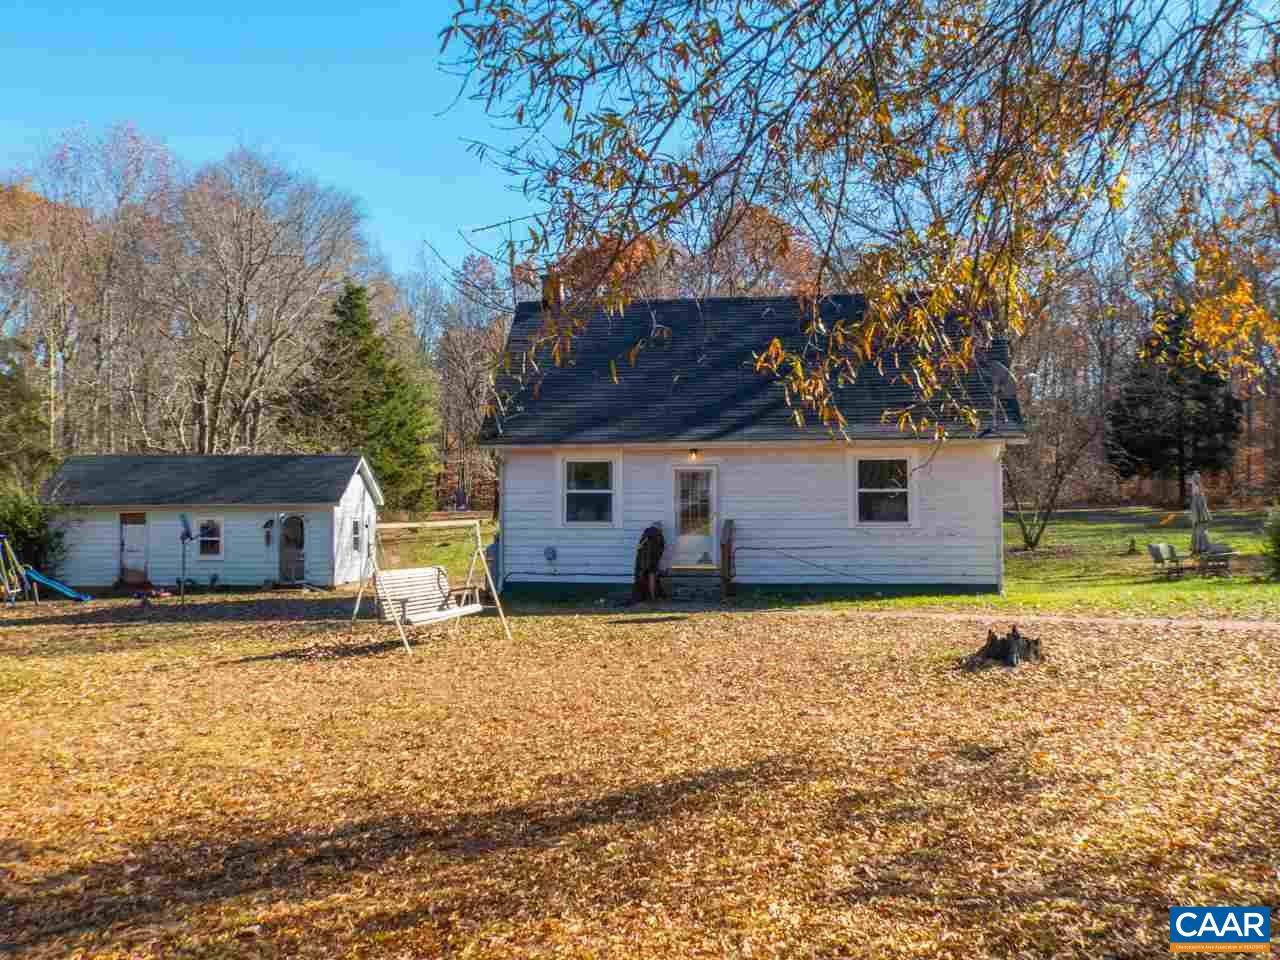 home for sale , MLS #569901, 4568 Patrick Henry Hwy